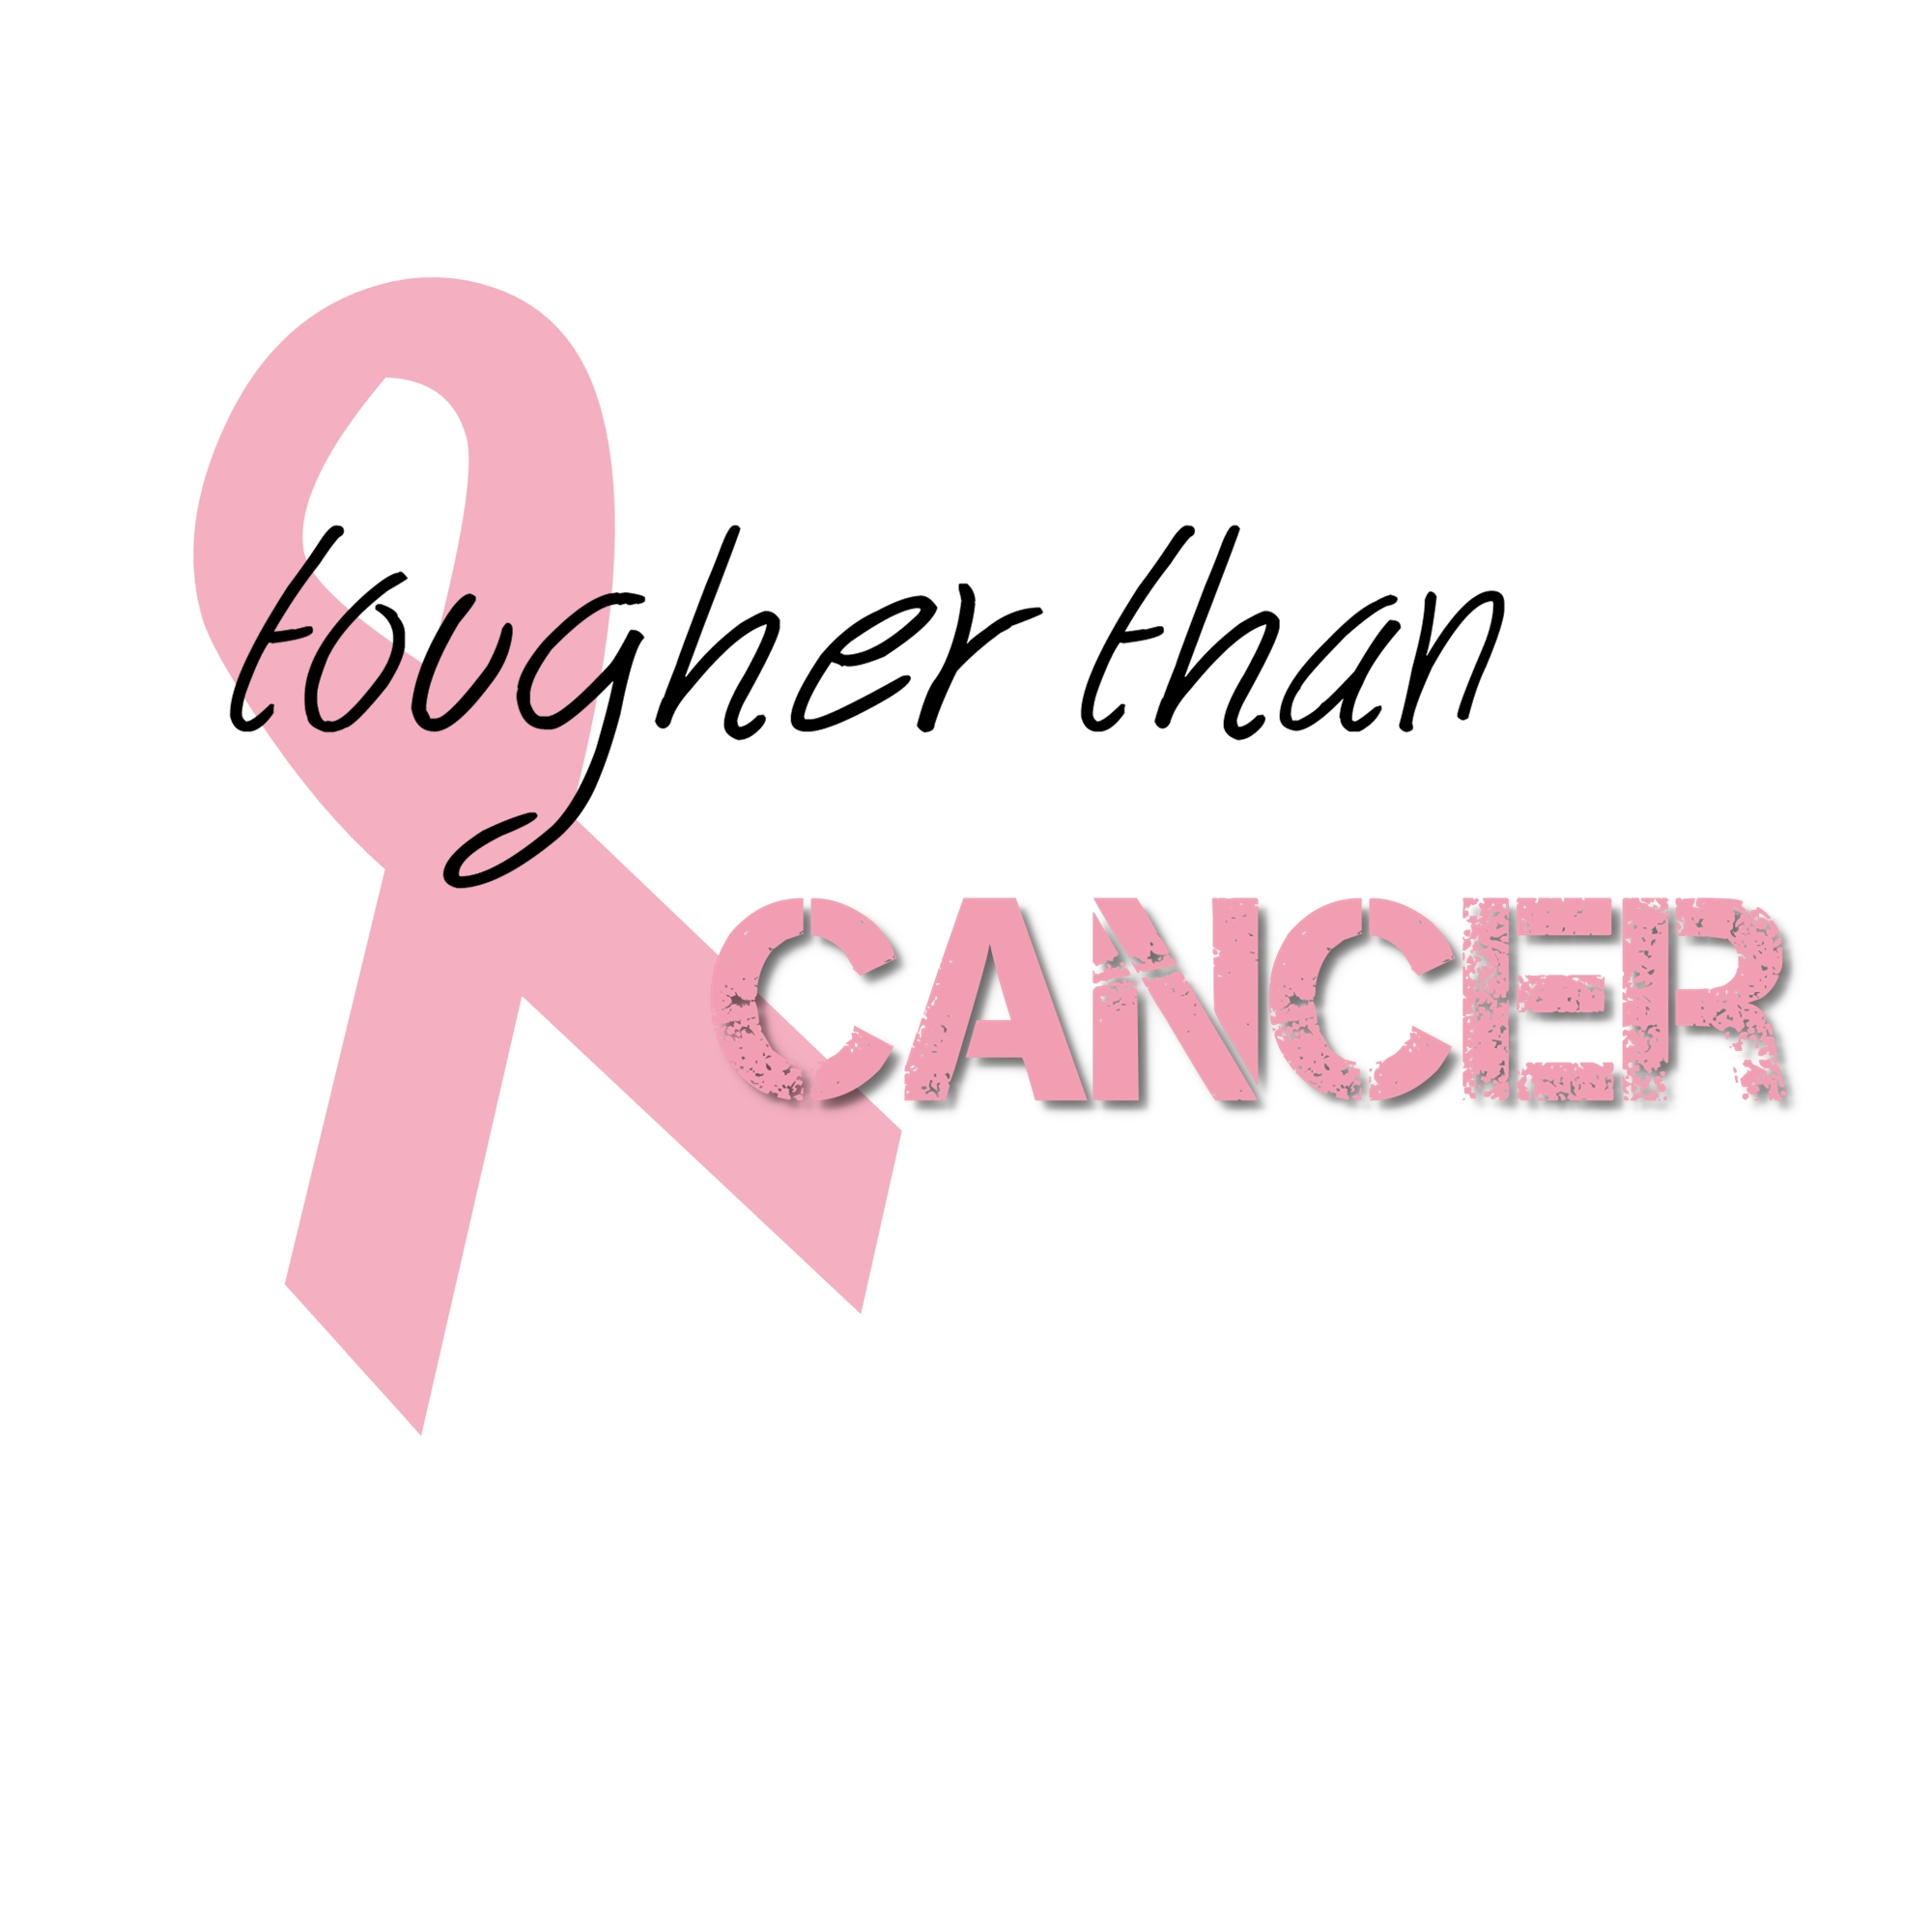 Breast Cancer Awareness Wallpaper 2000x2000